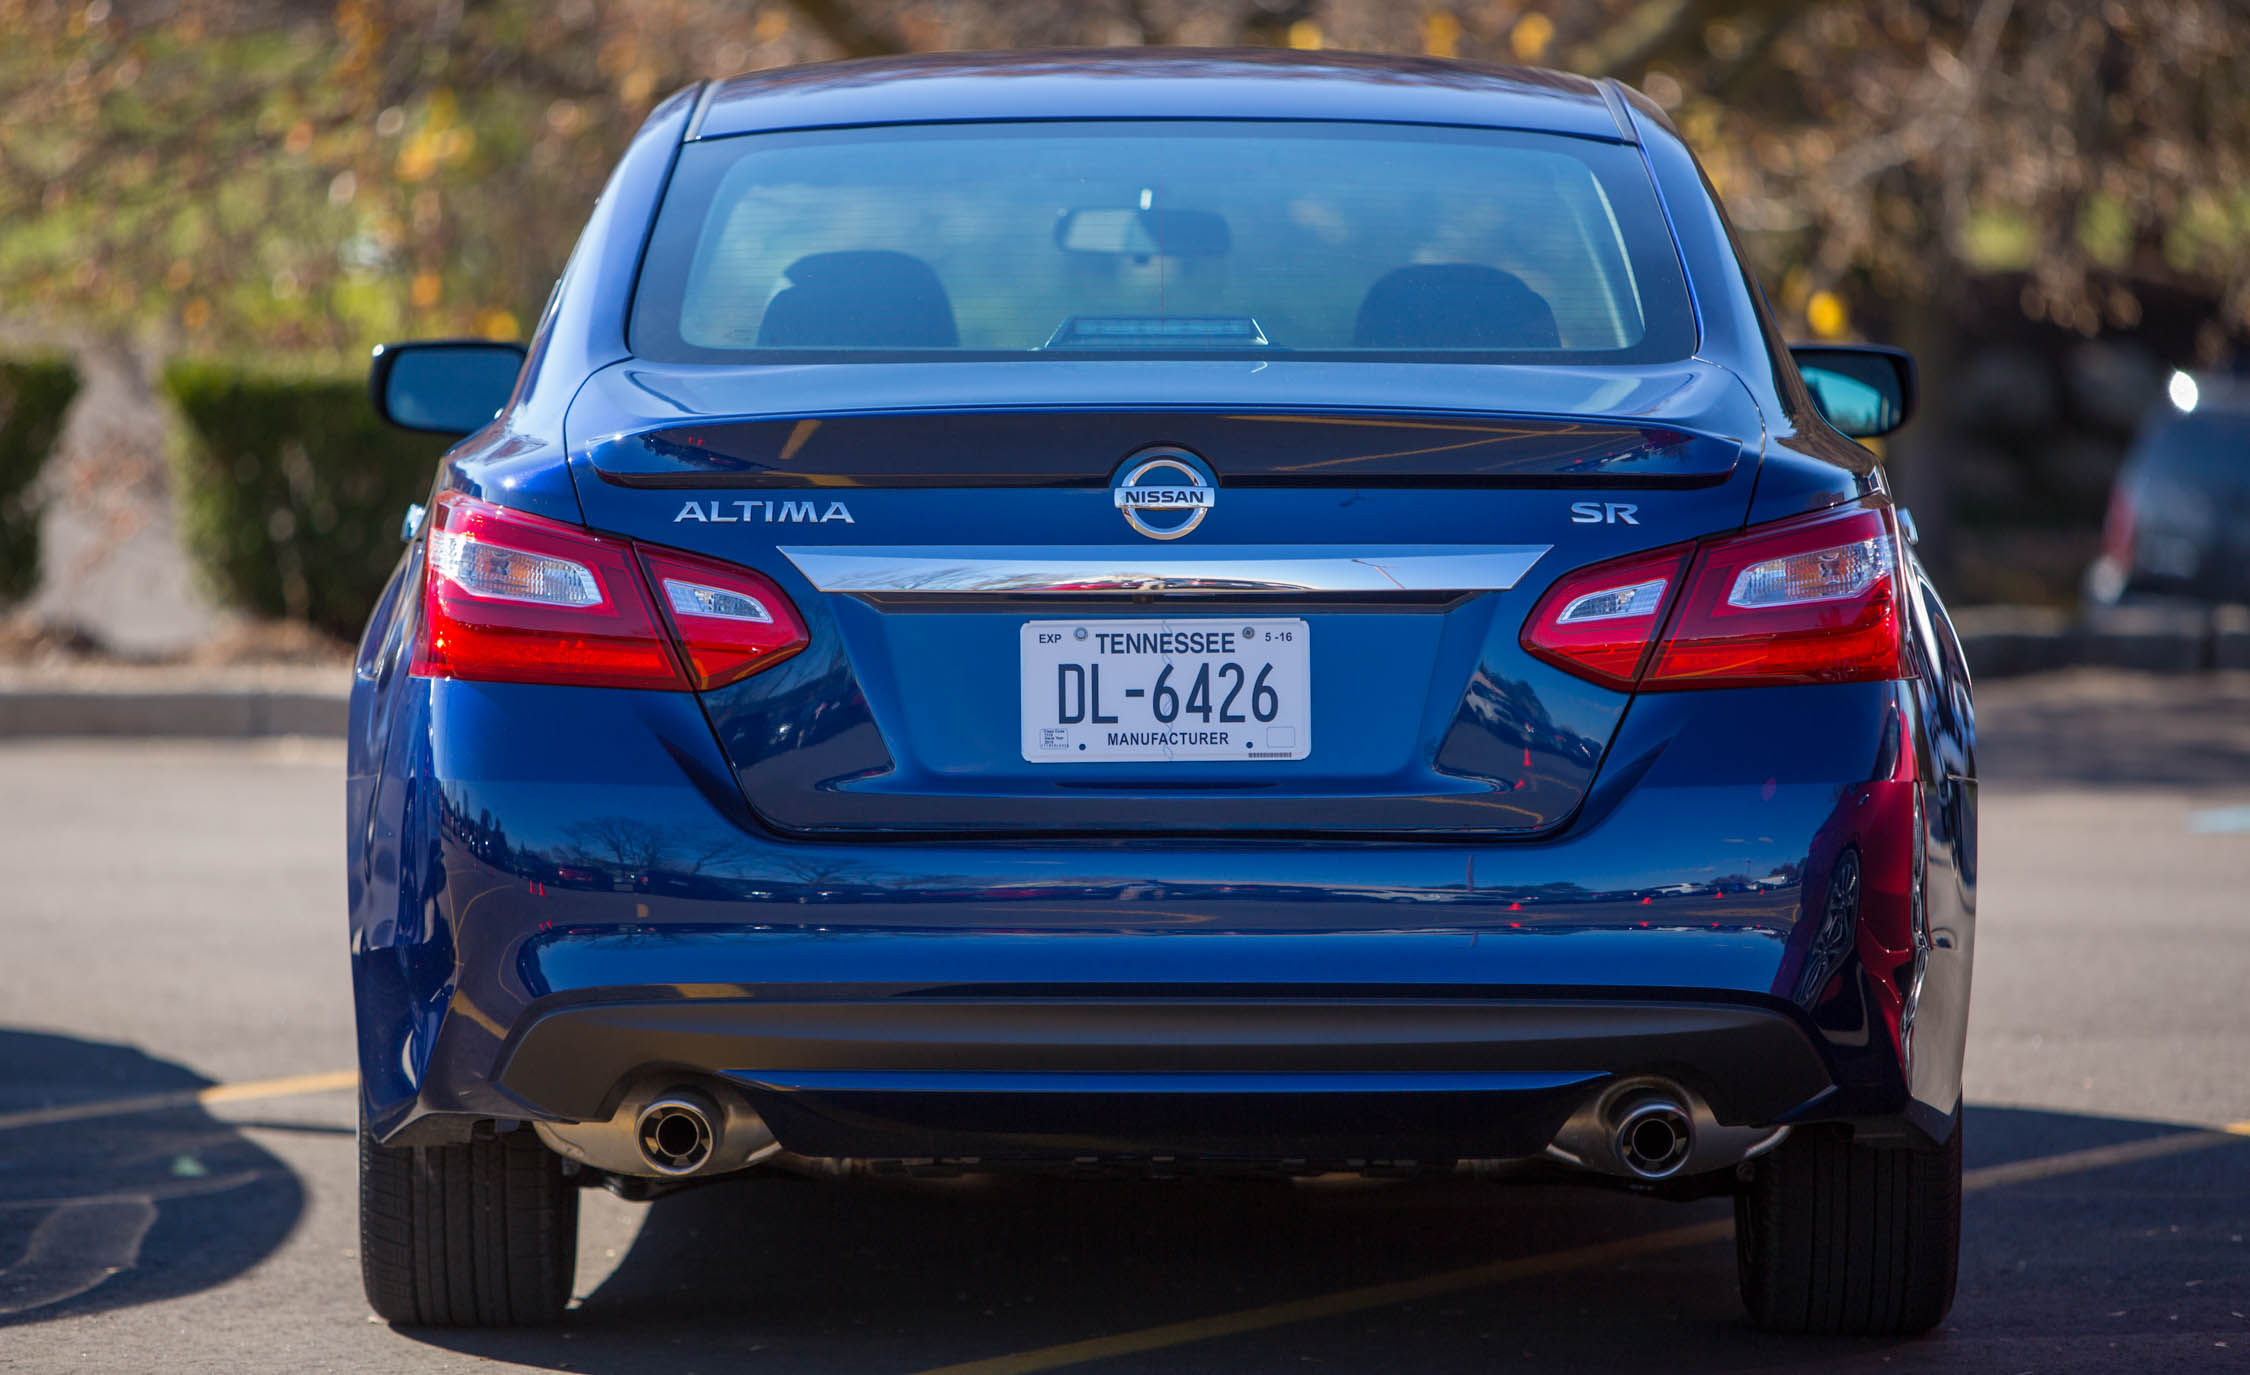 2016 Nissan Altima Exterior Rear End